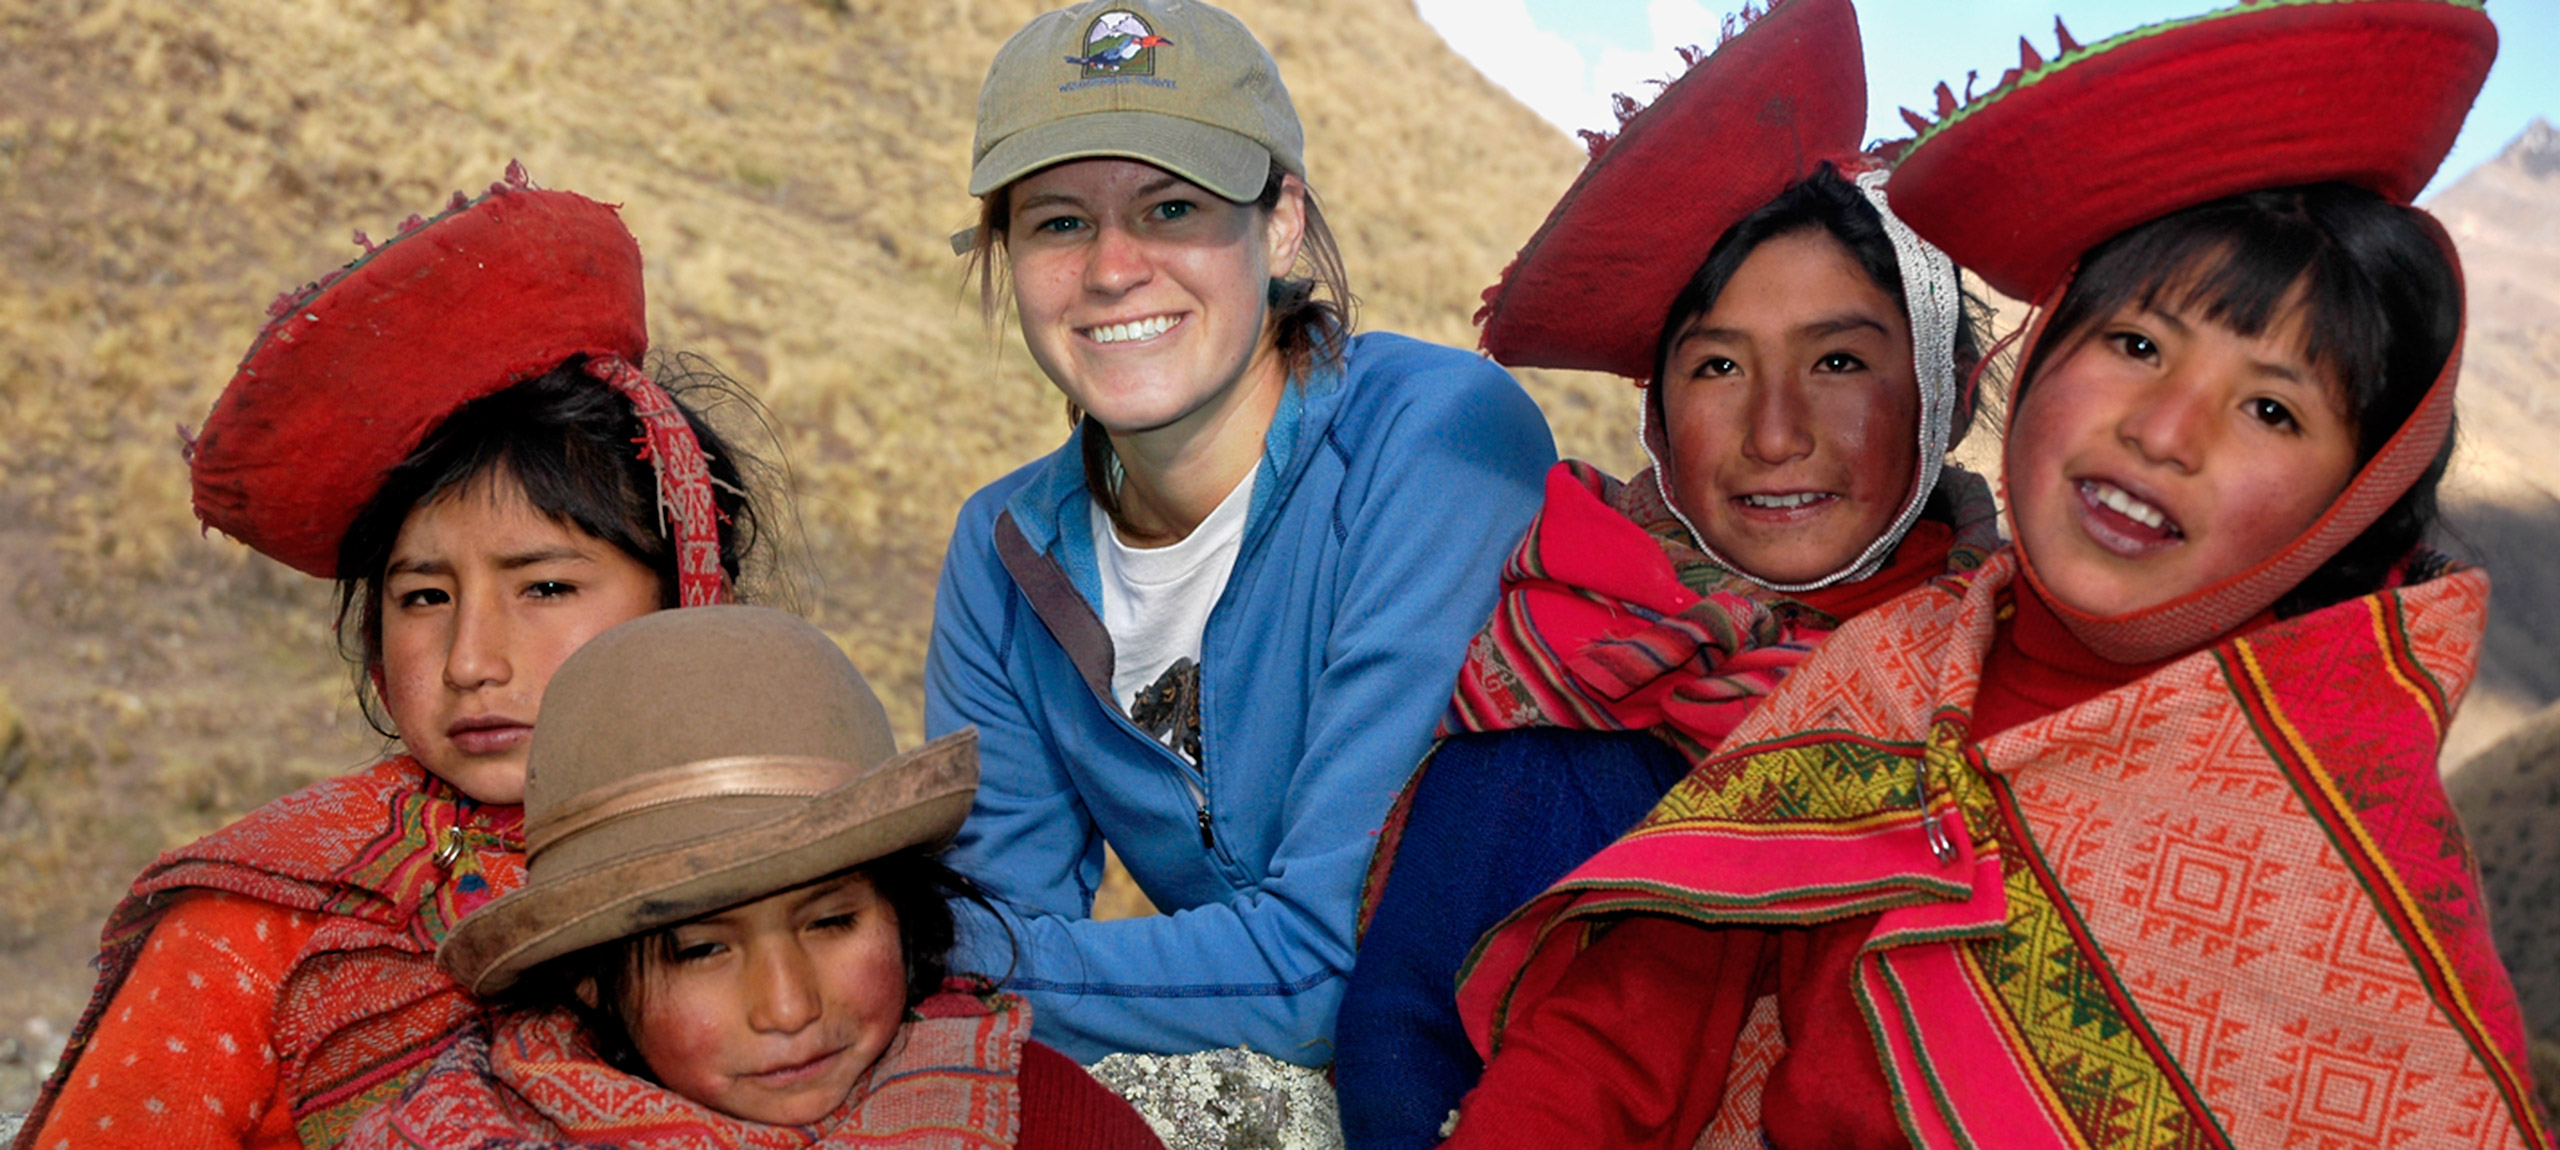 Making new friends in Peru